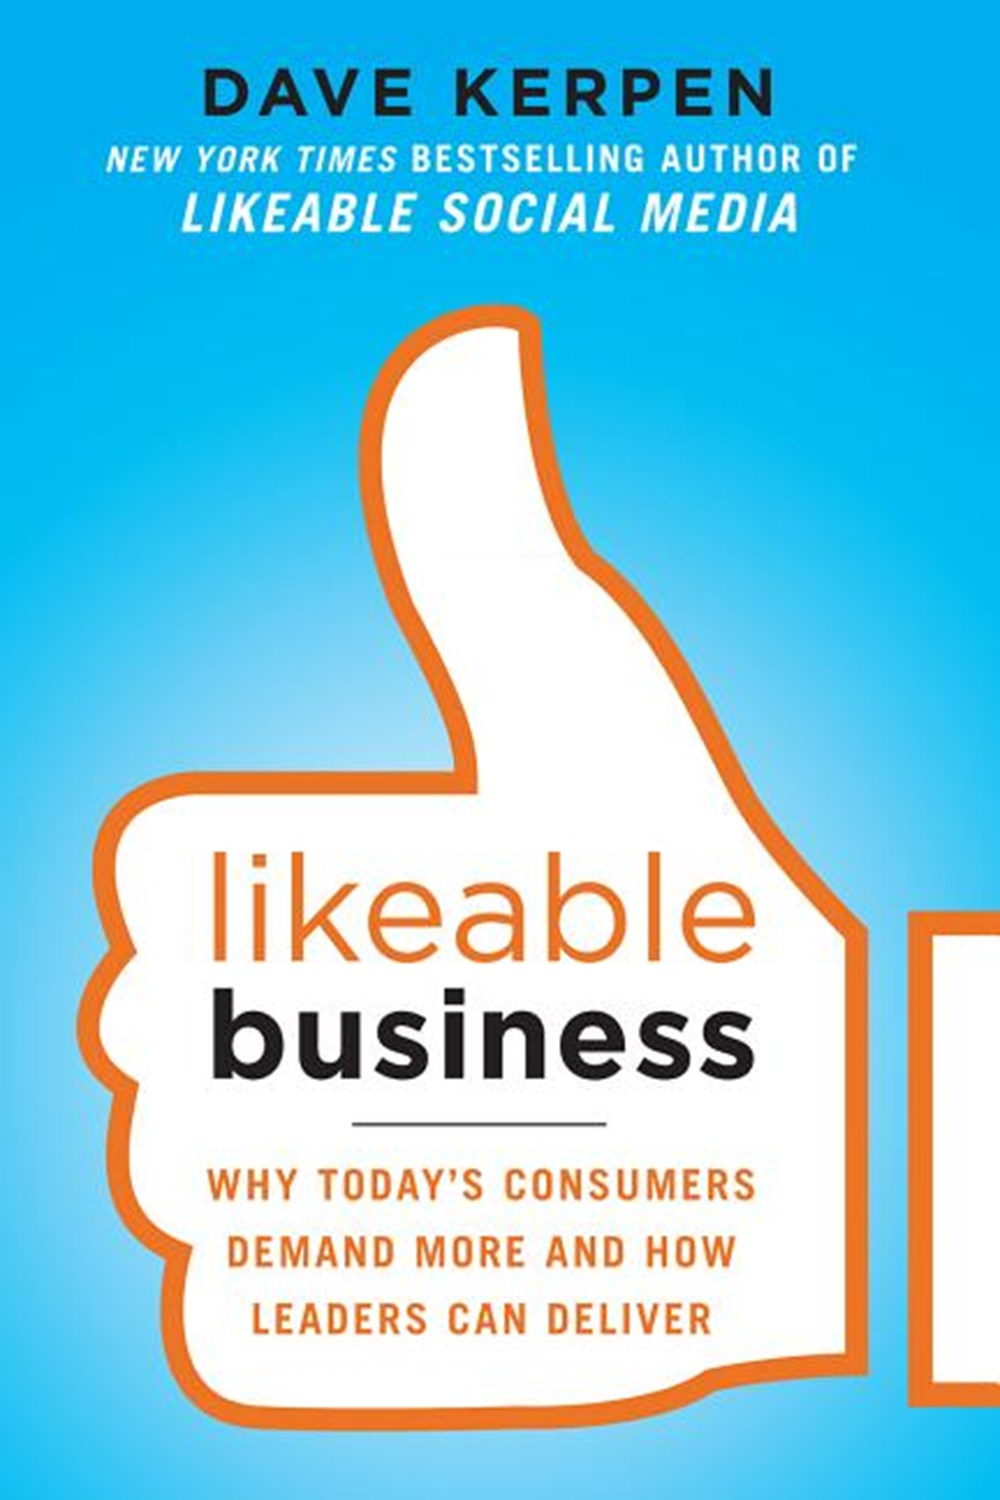 Likeable Business Why Today's Consumers Demand More and How Leaders Can Deliver